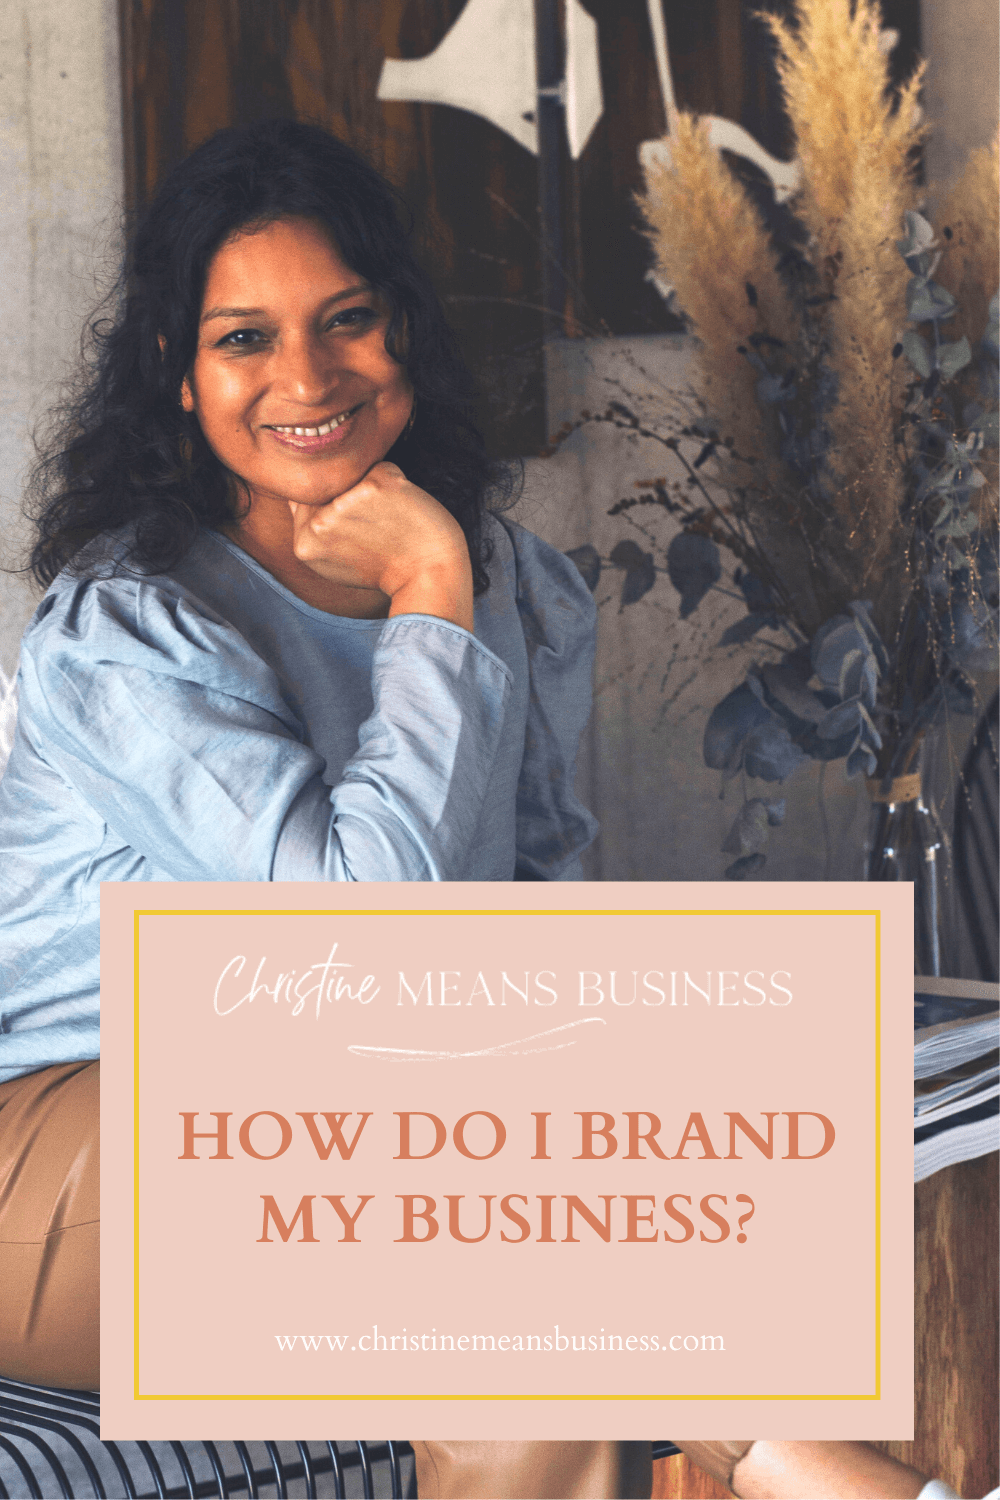 How do I brand my business?